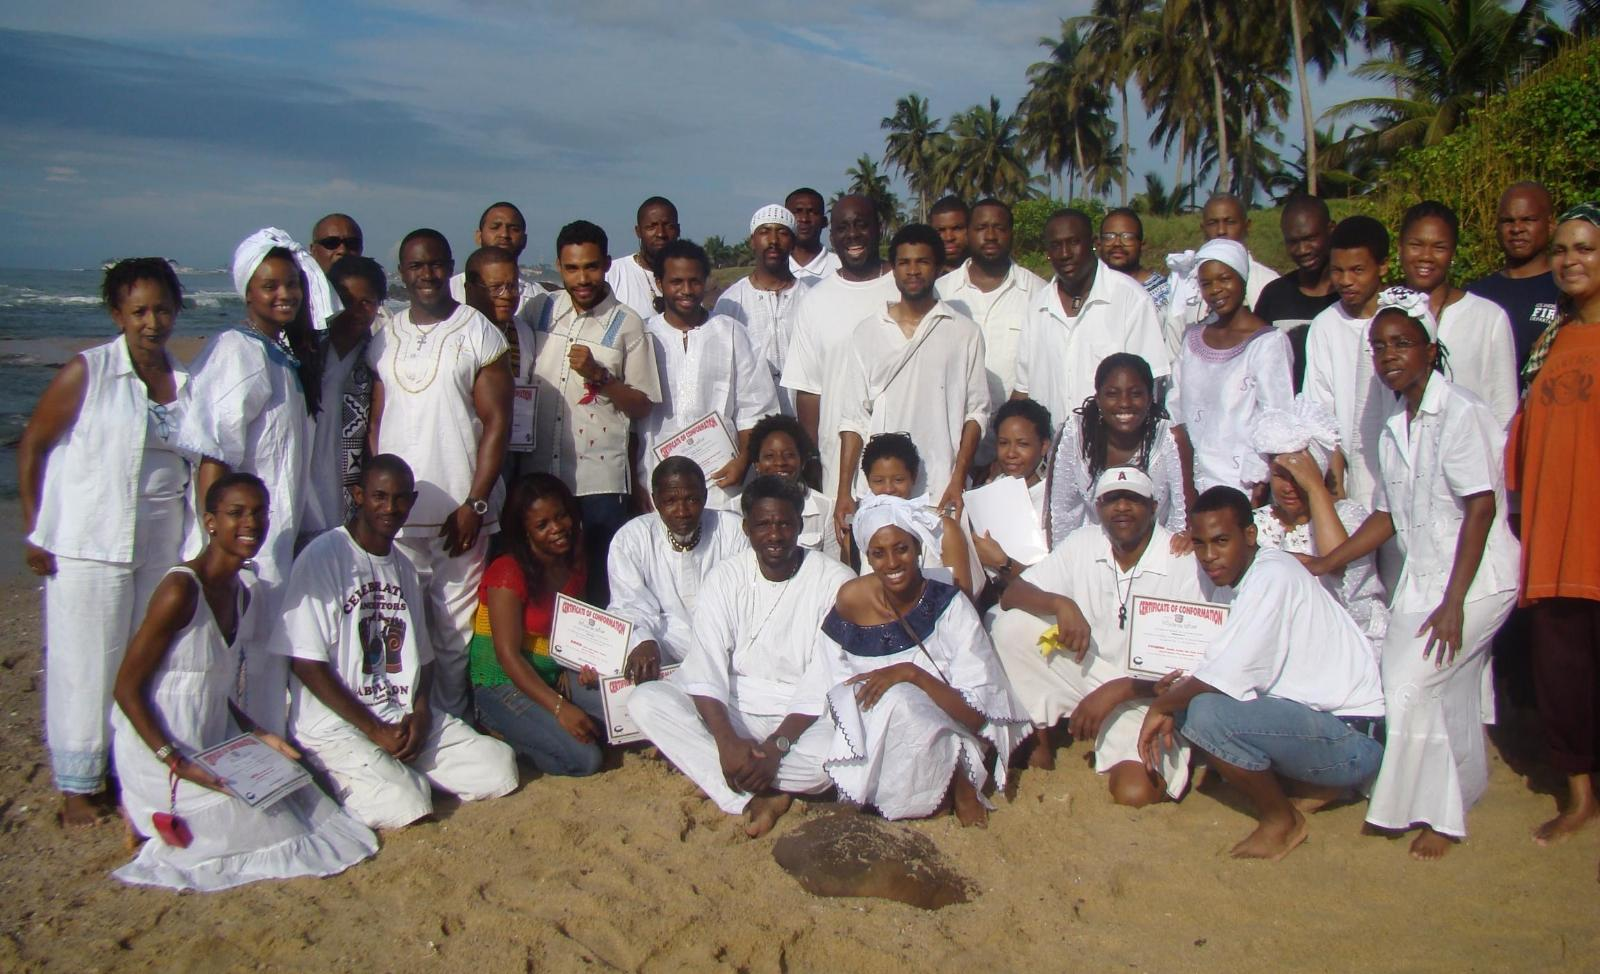 Ghana Roots, Culture & Investment Tour Group Oct 2007